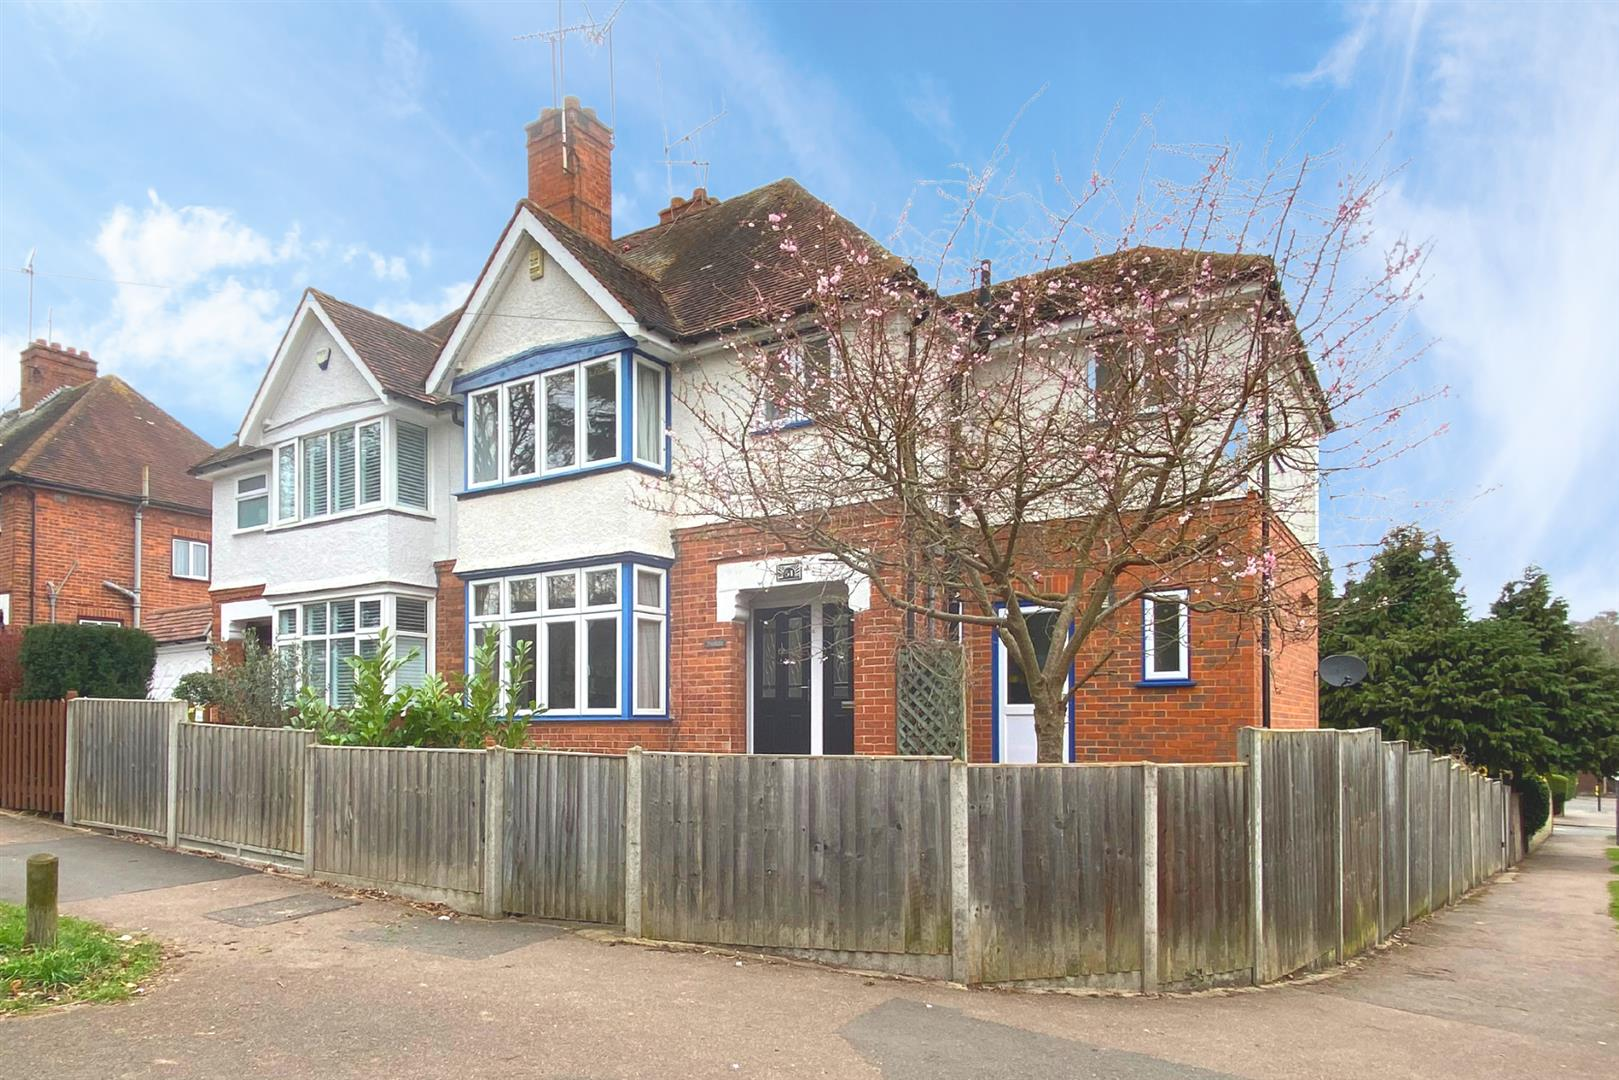 4 bed semi-detached for sale, RG1